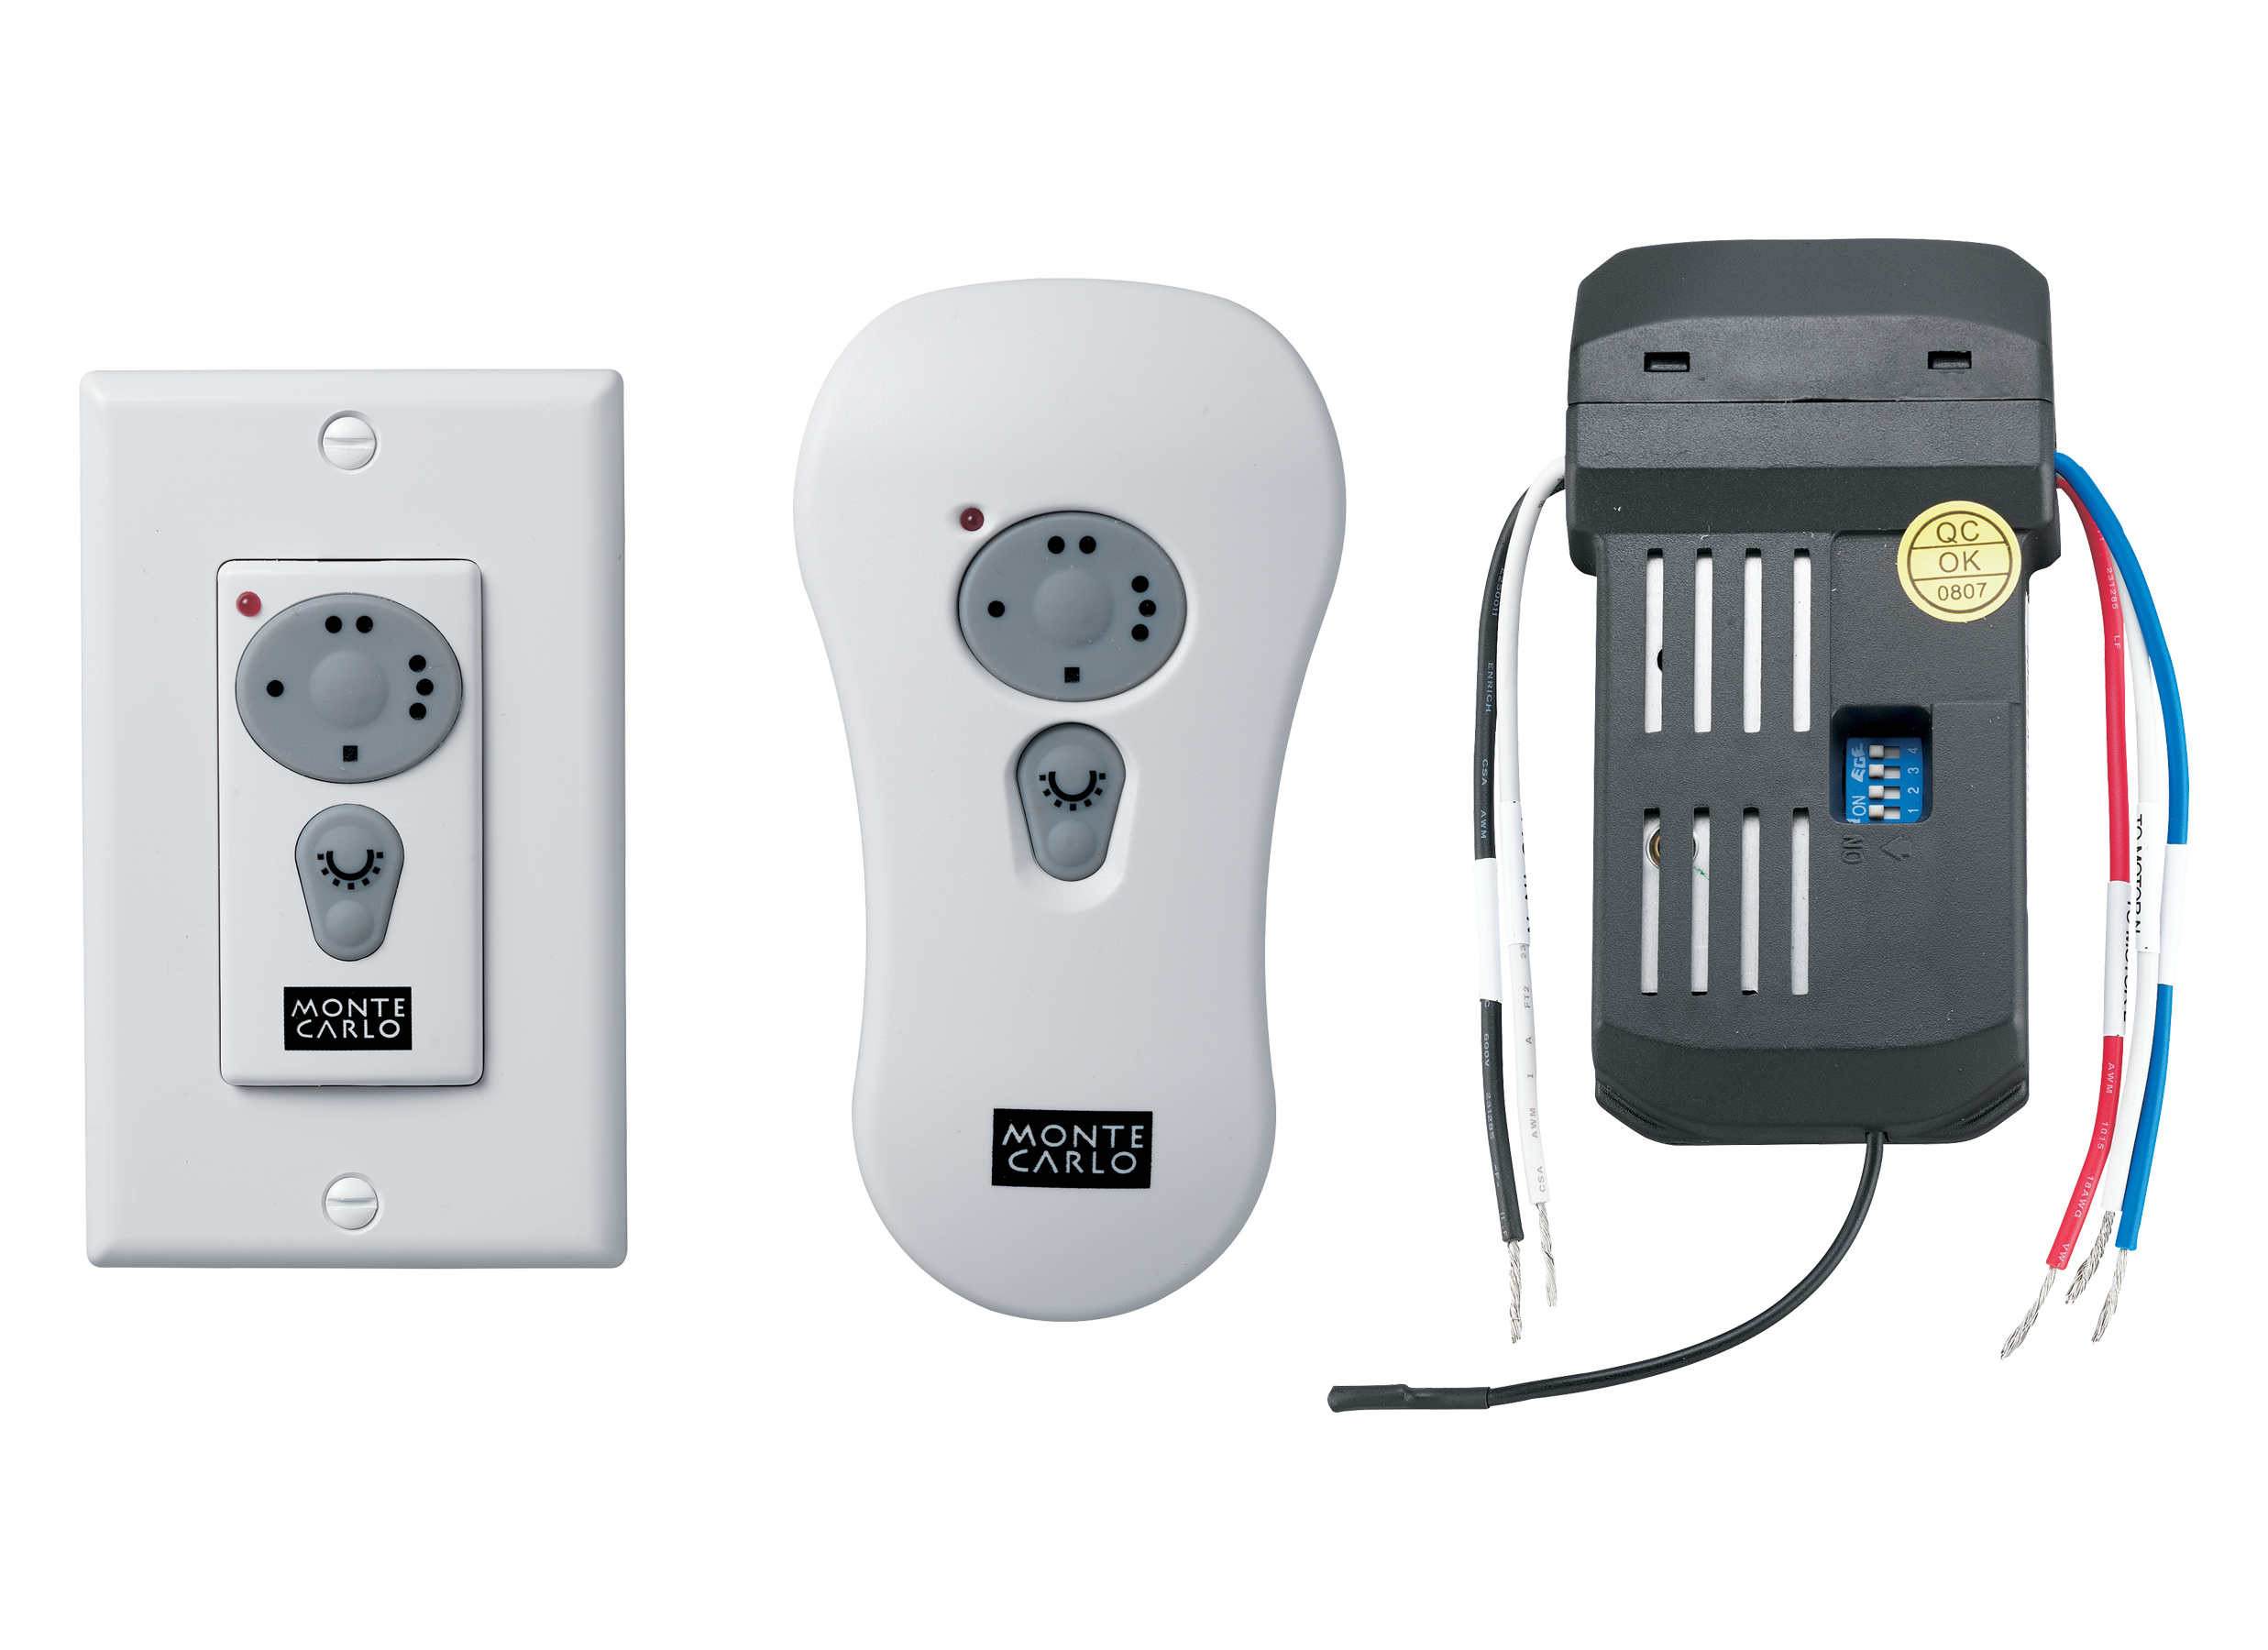 CK250 Wall Hand held Remote Control Kit White